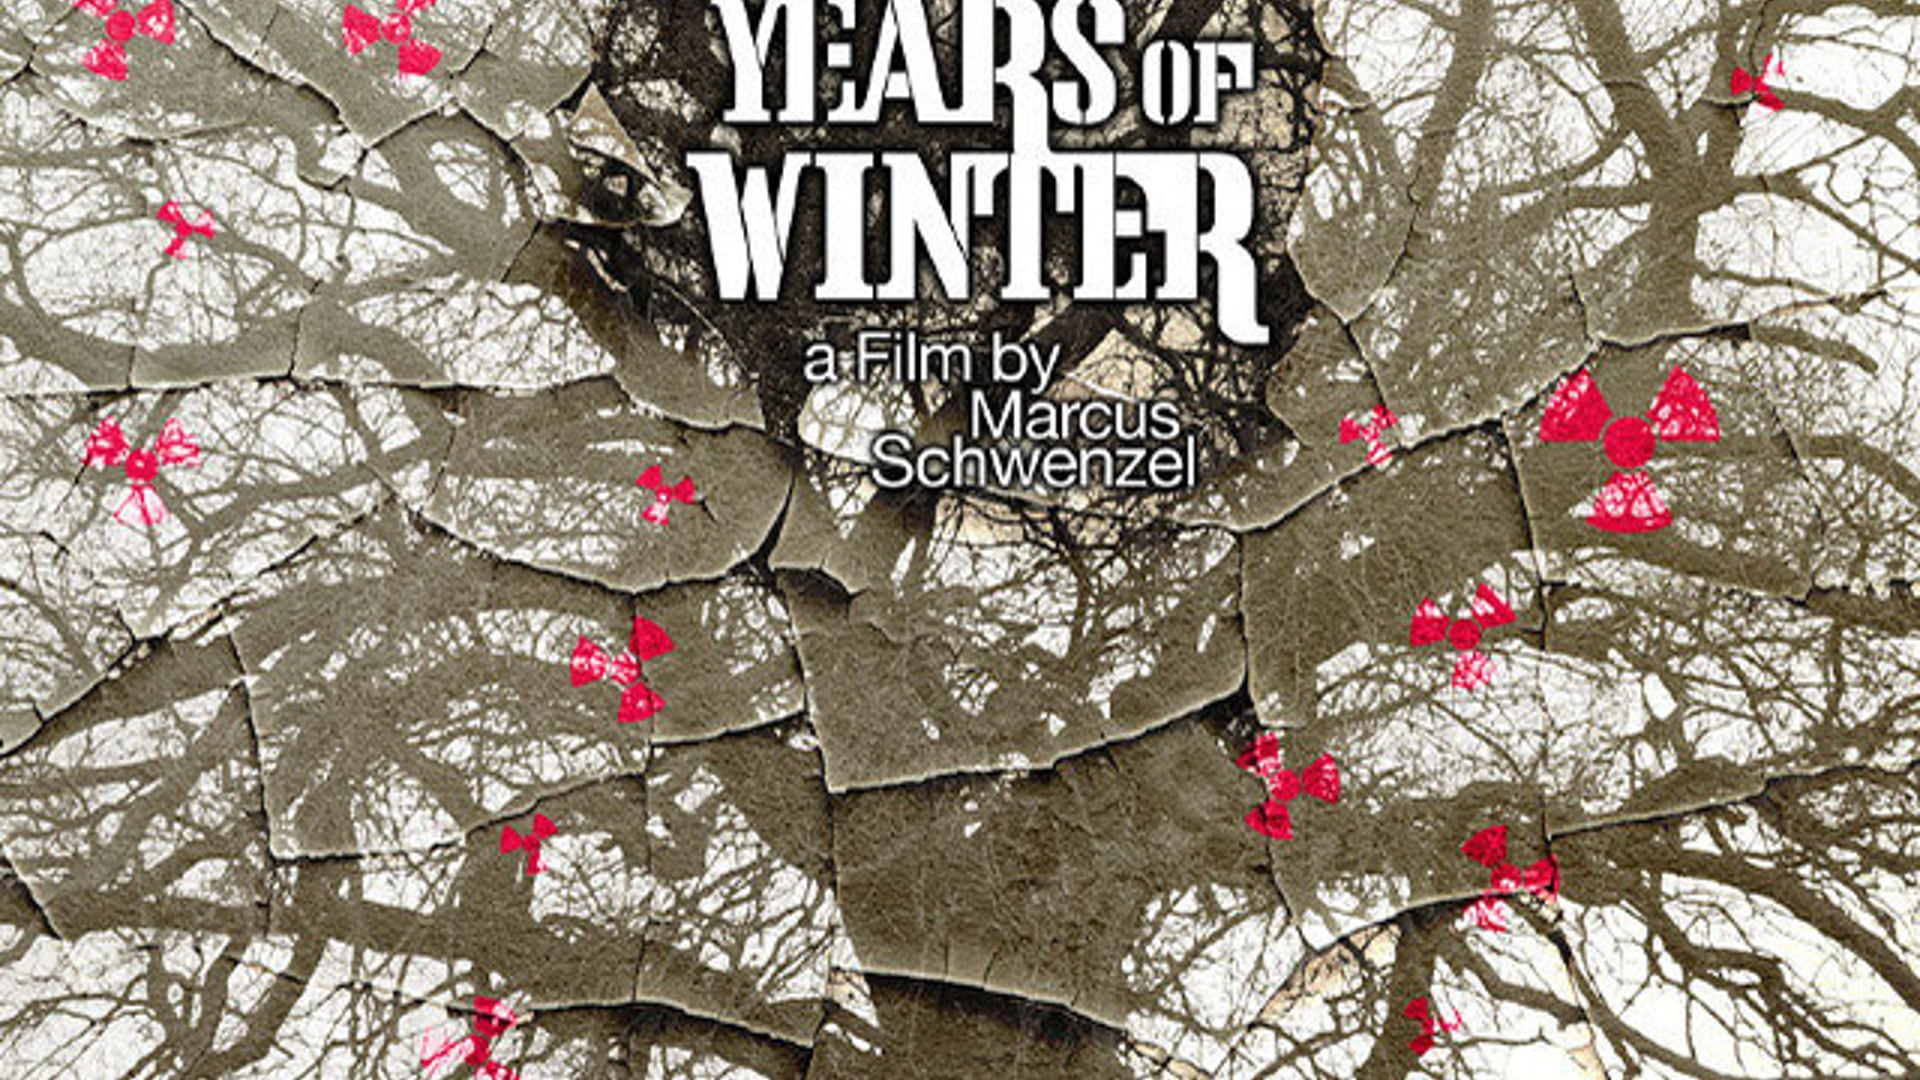 SEVEN YEARS OF WINTER -TRAILER